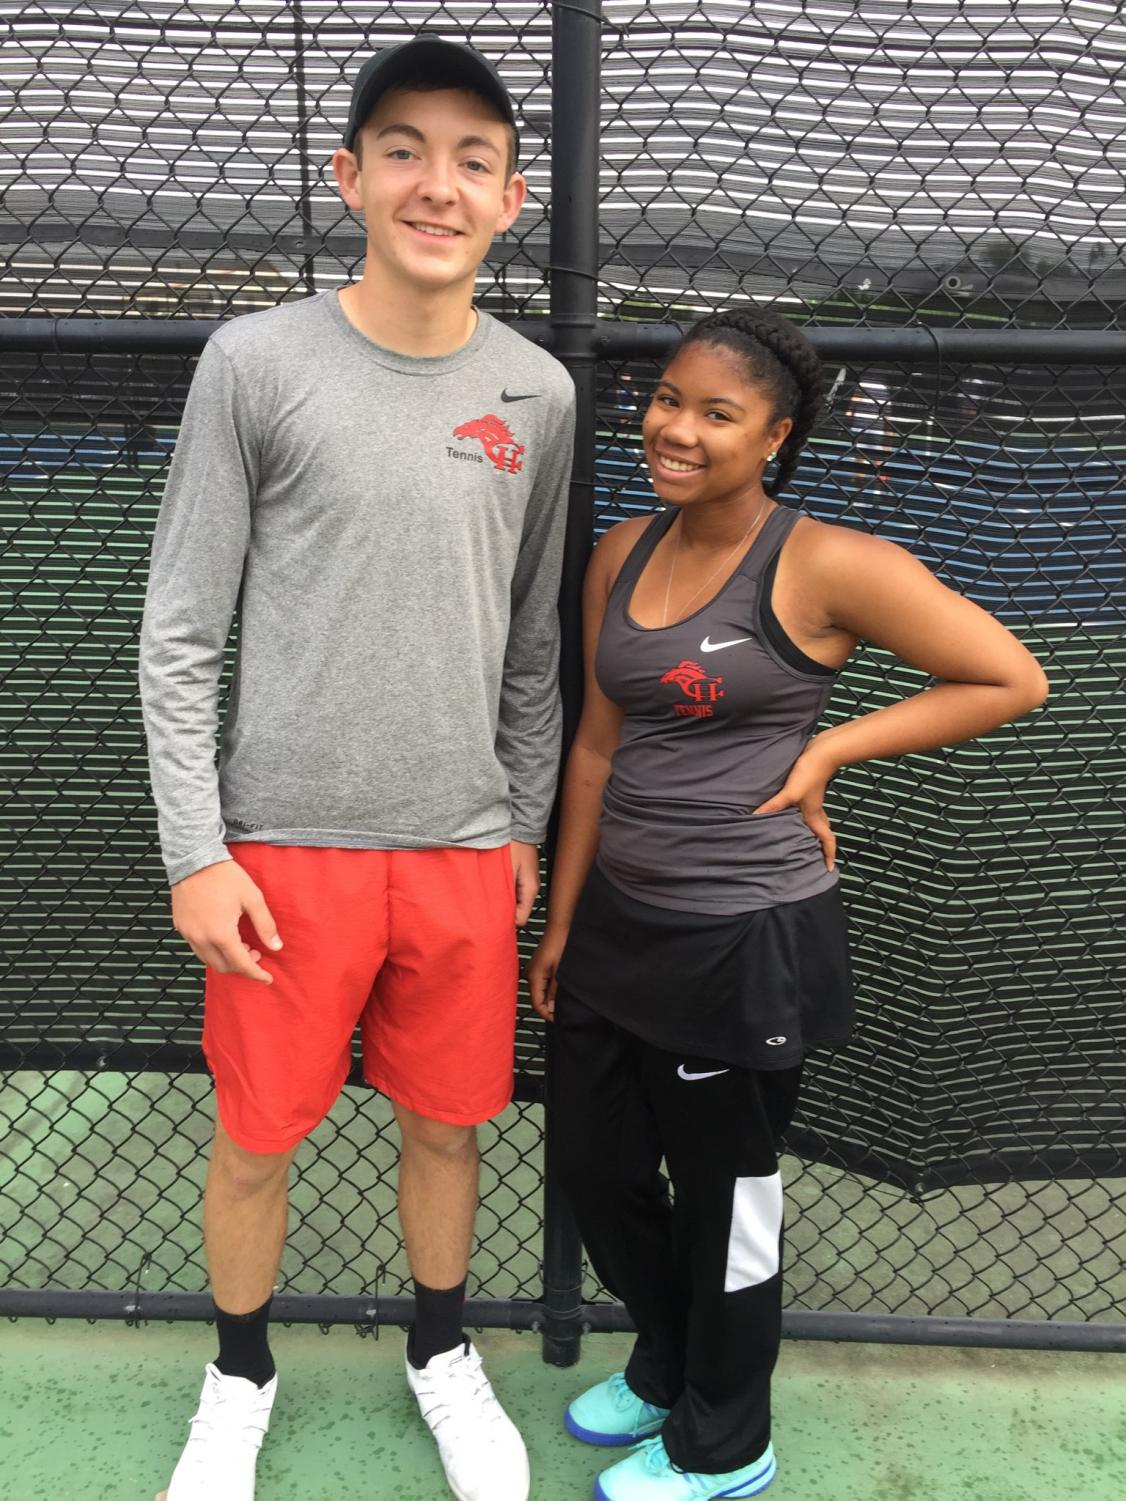 On May 1, Mikaila Coleman served up her second state win at the MHSAA individual tennis championships in Oxford. Michael Floyd advanced to the semi-final round of the 2019 5A boys singles Mississippi state championship.